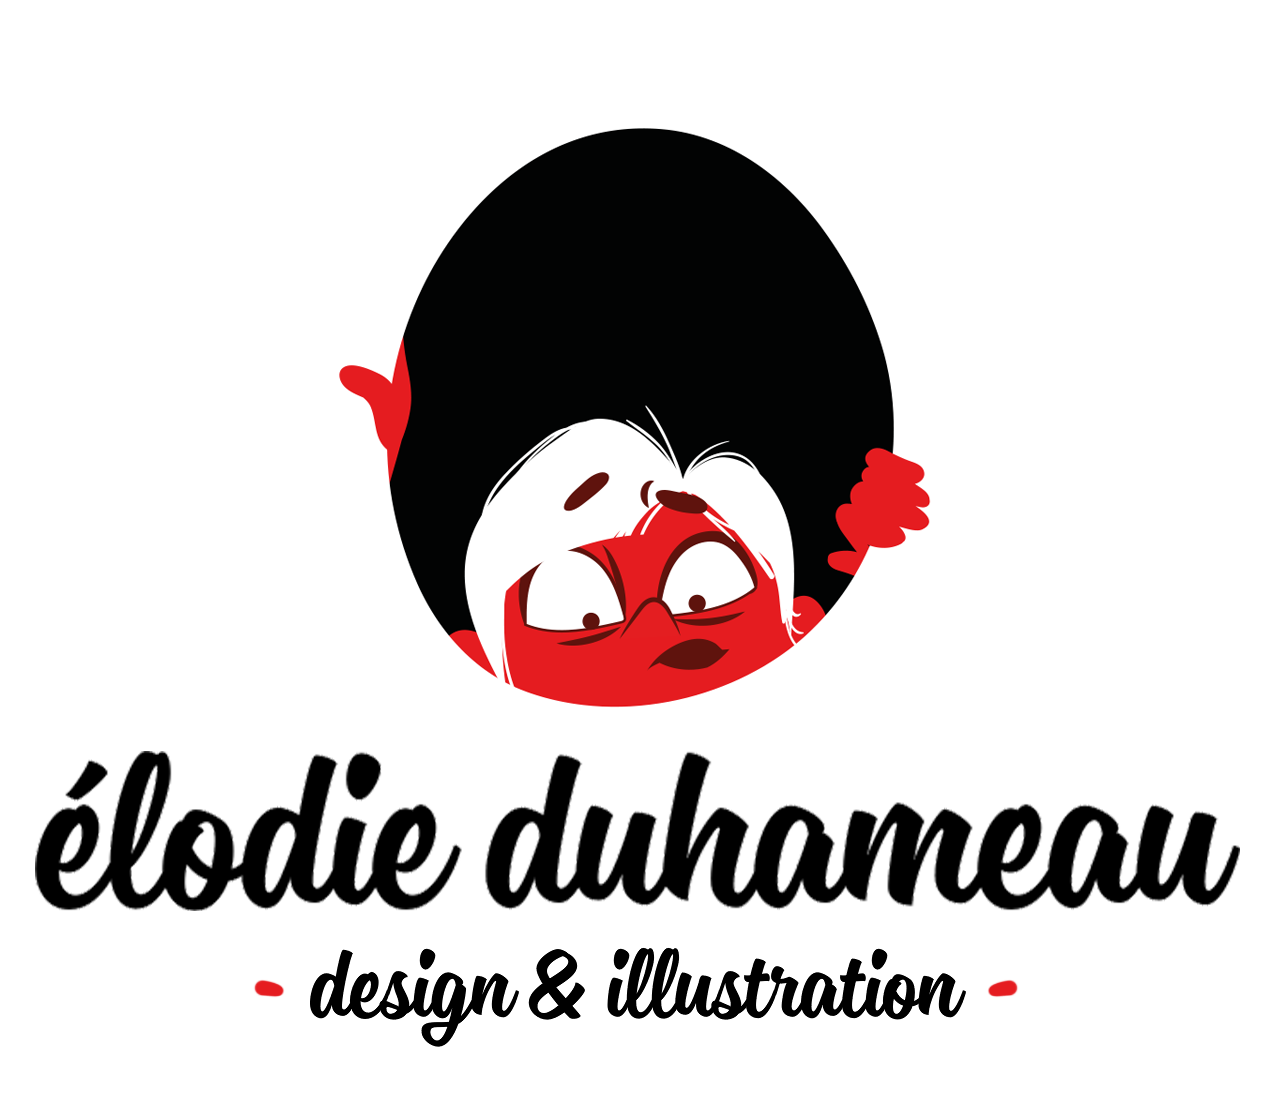 Elodie Duhameau, DA / Design / Illustration